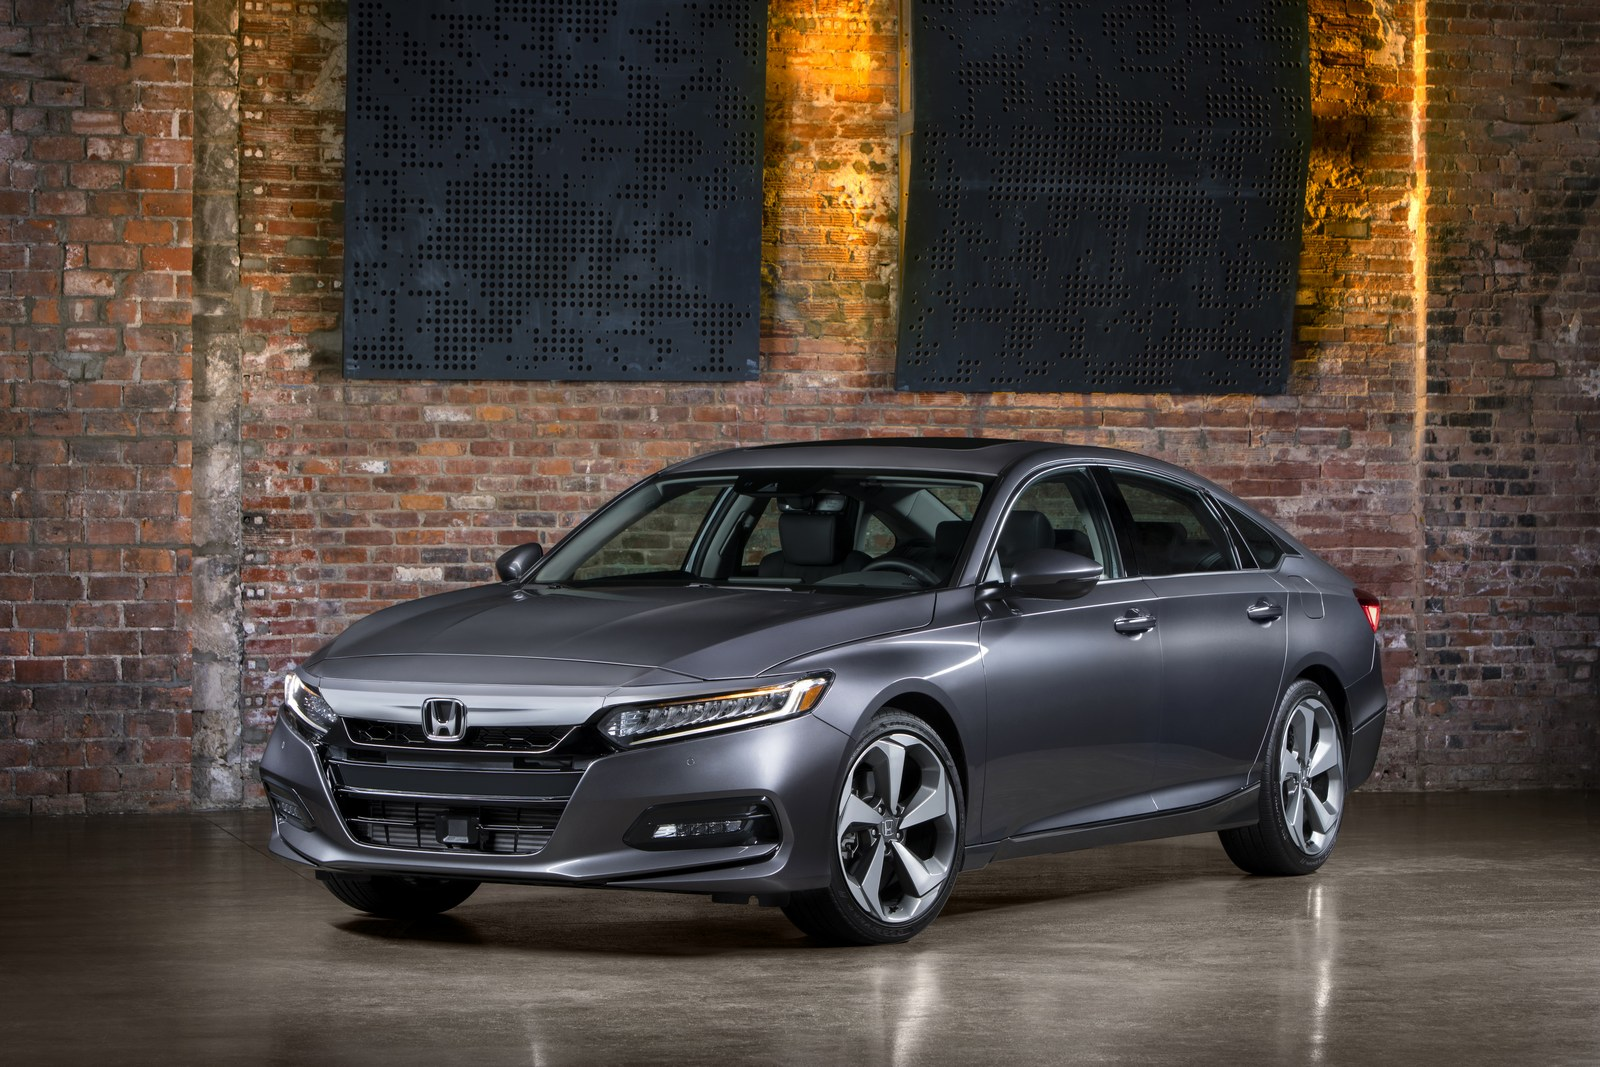 Honda Accord 2018 (10)